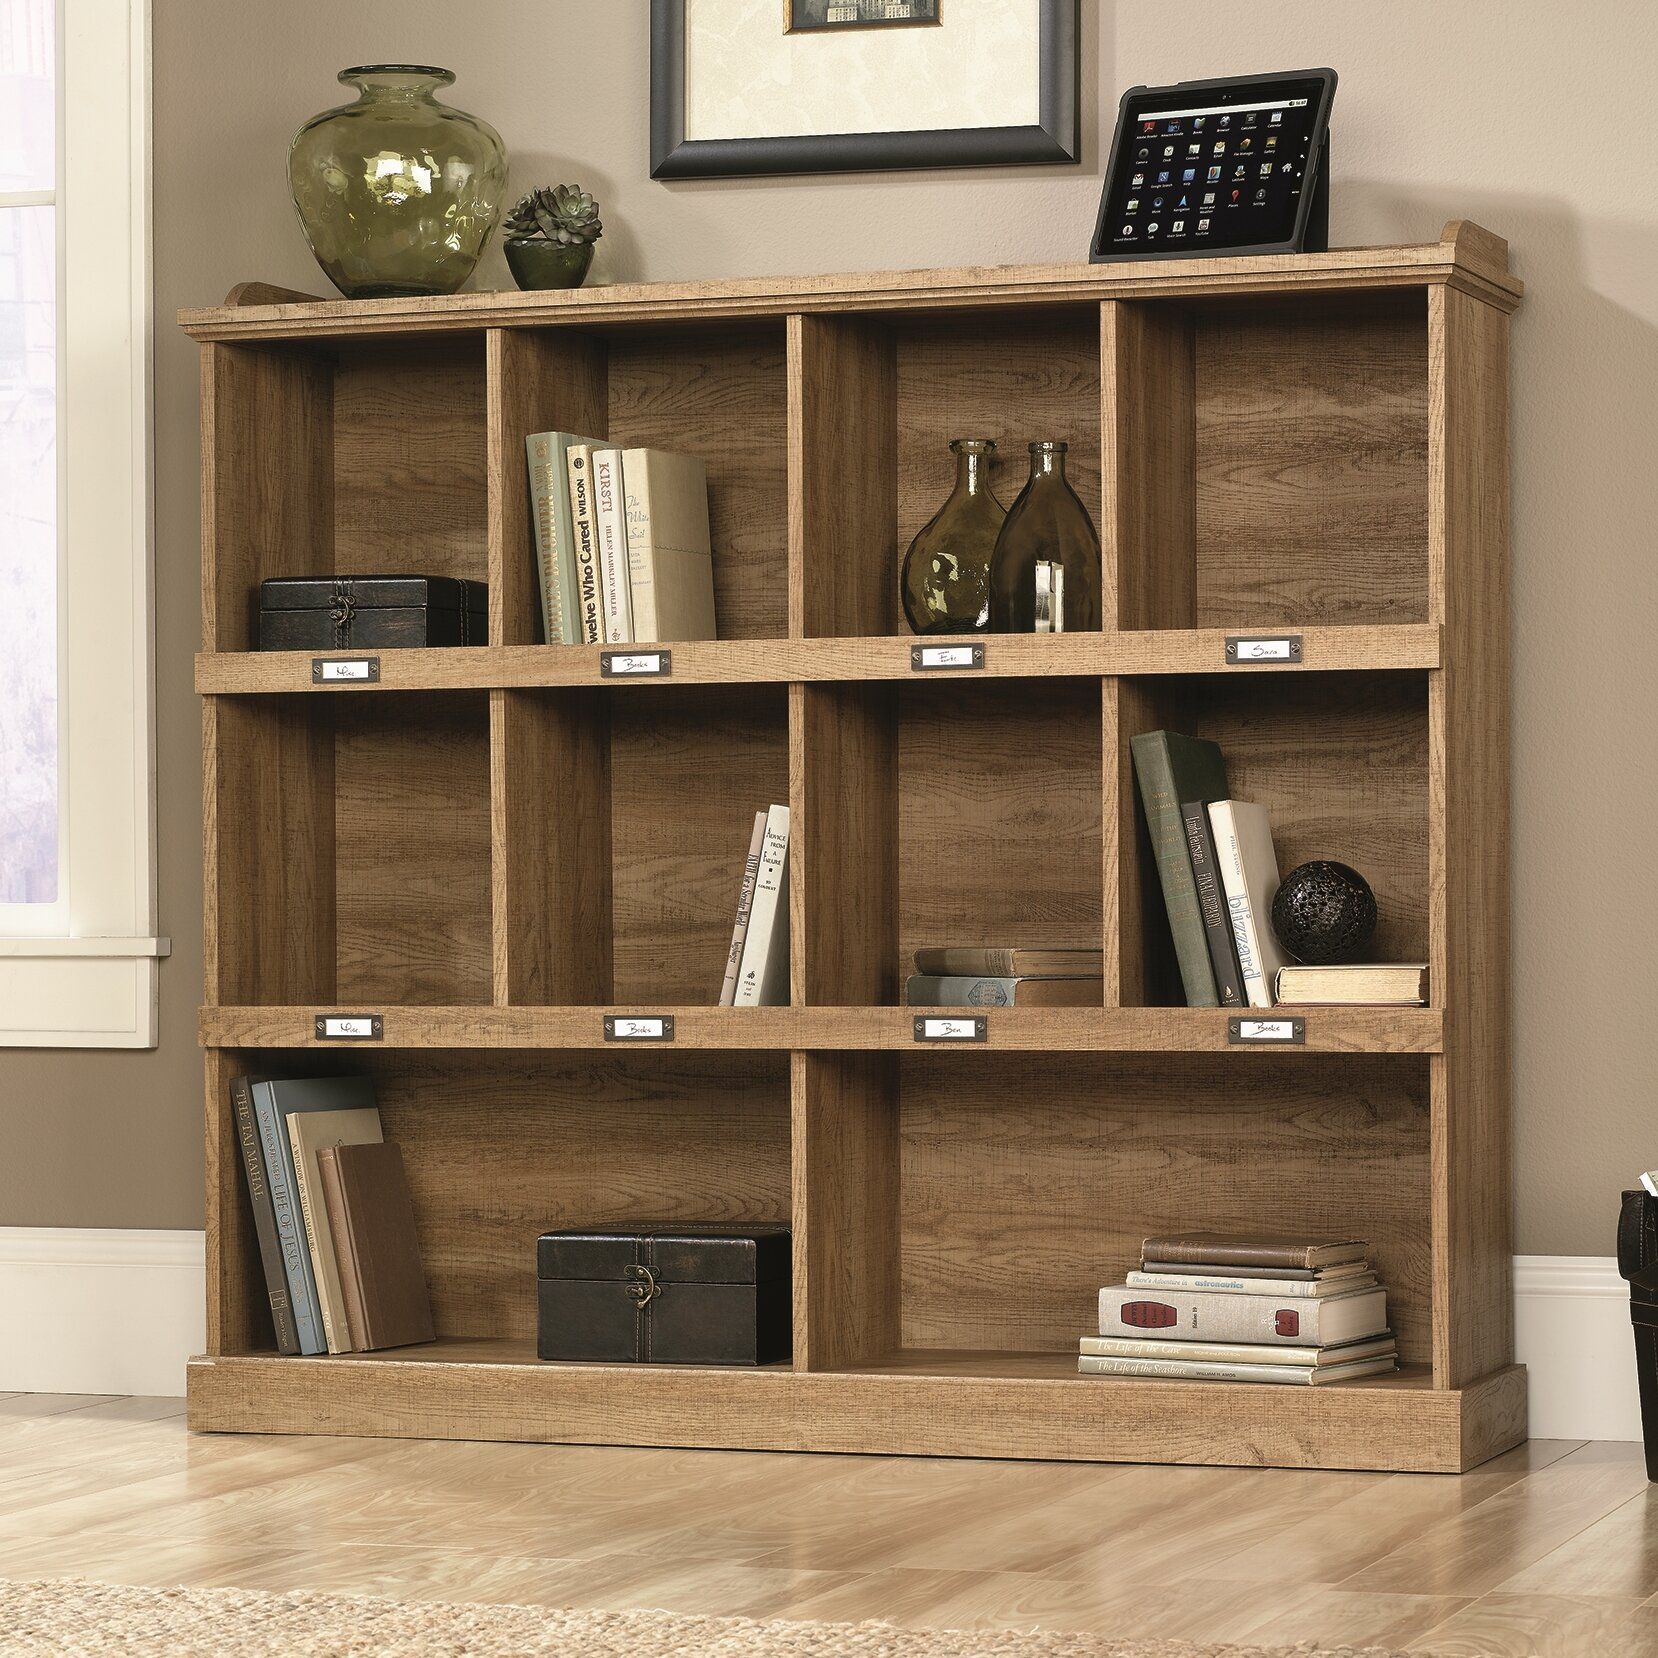 guide buying bookcase white freshome image oklproduct bookcases modern wide